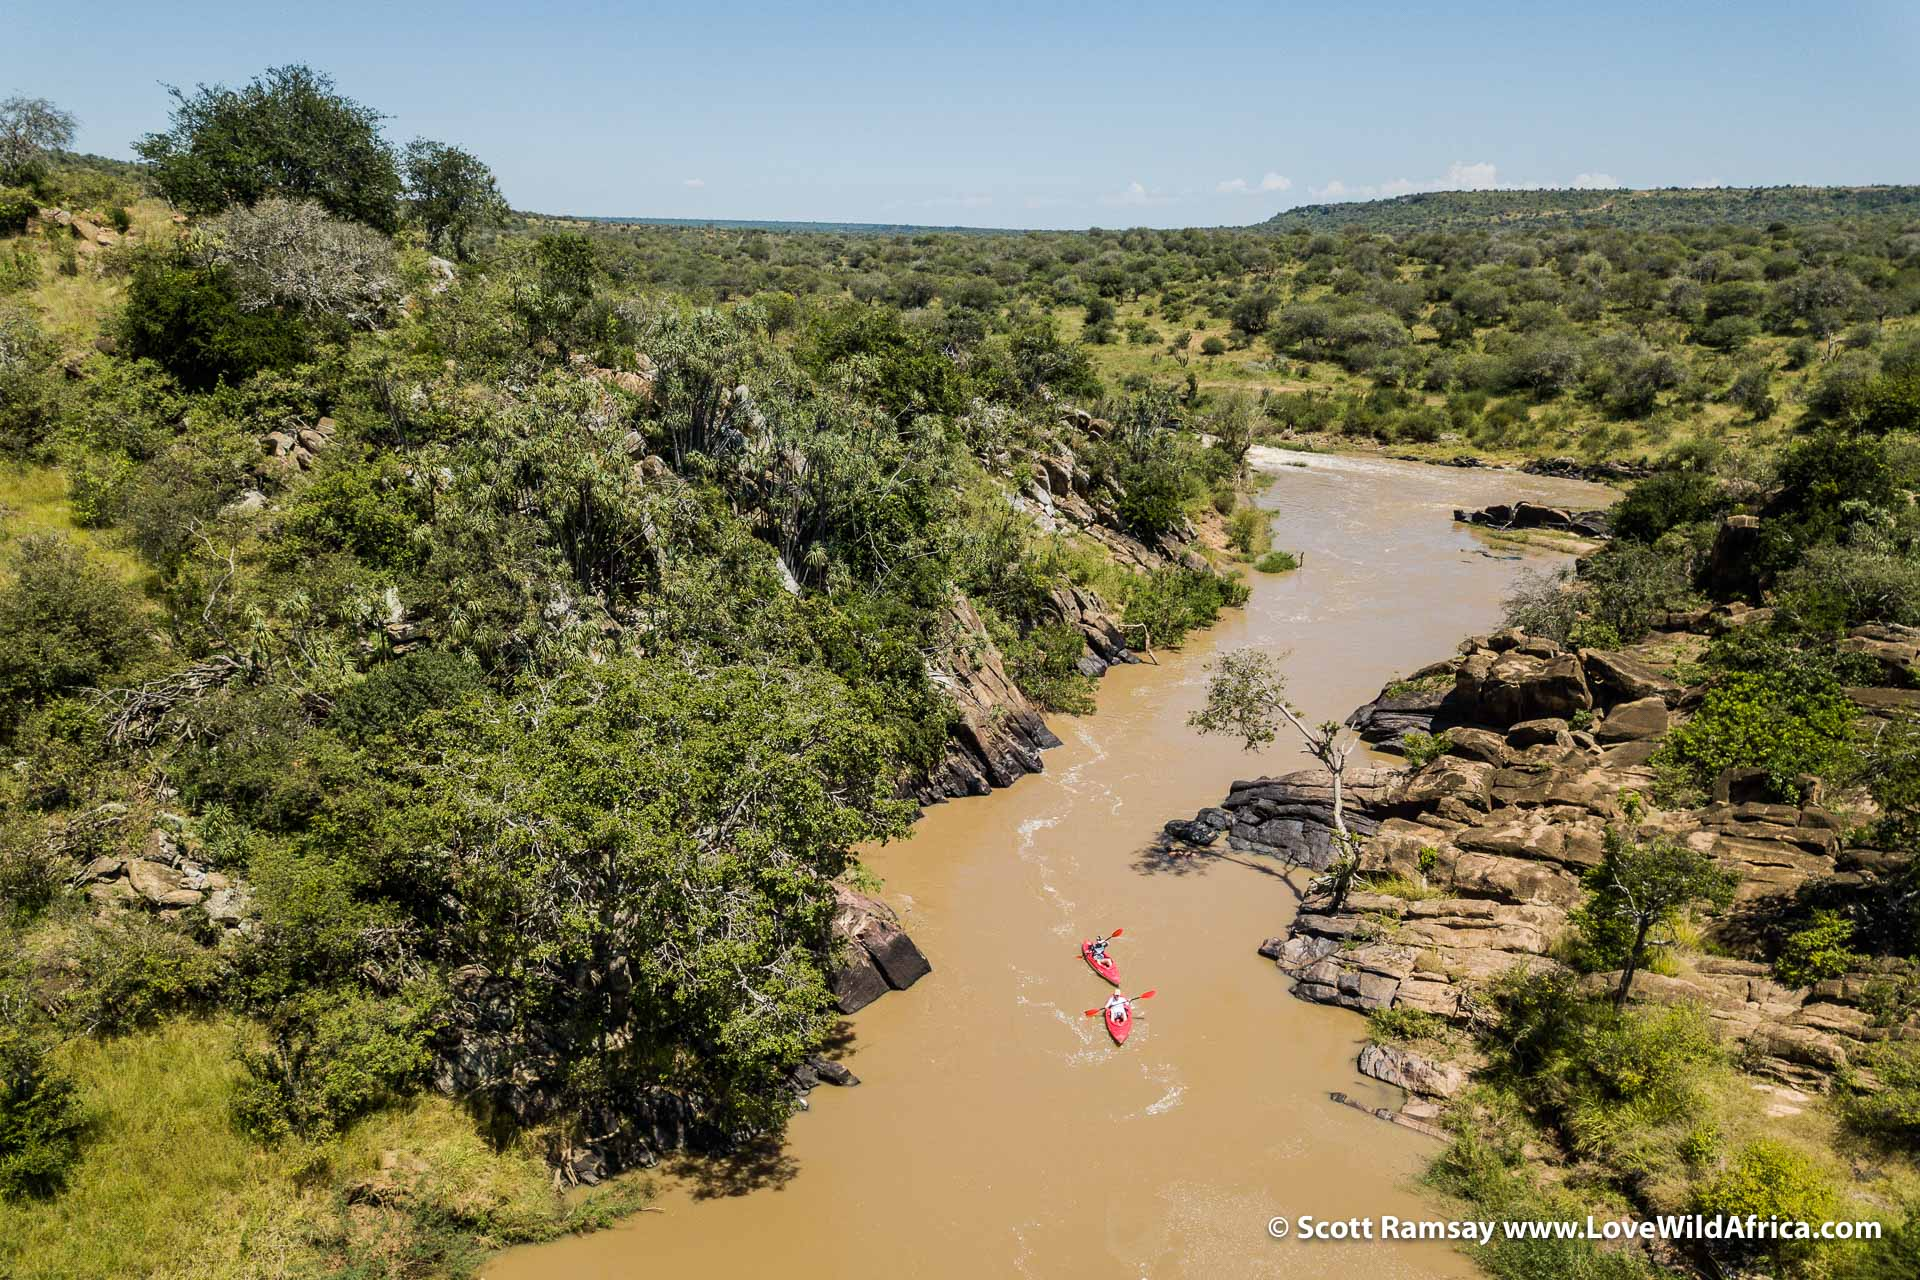 Drone view of canoeing on the Ewaso Ngiro